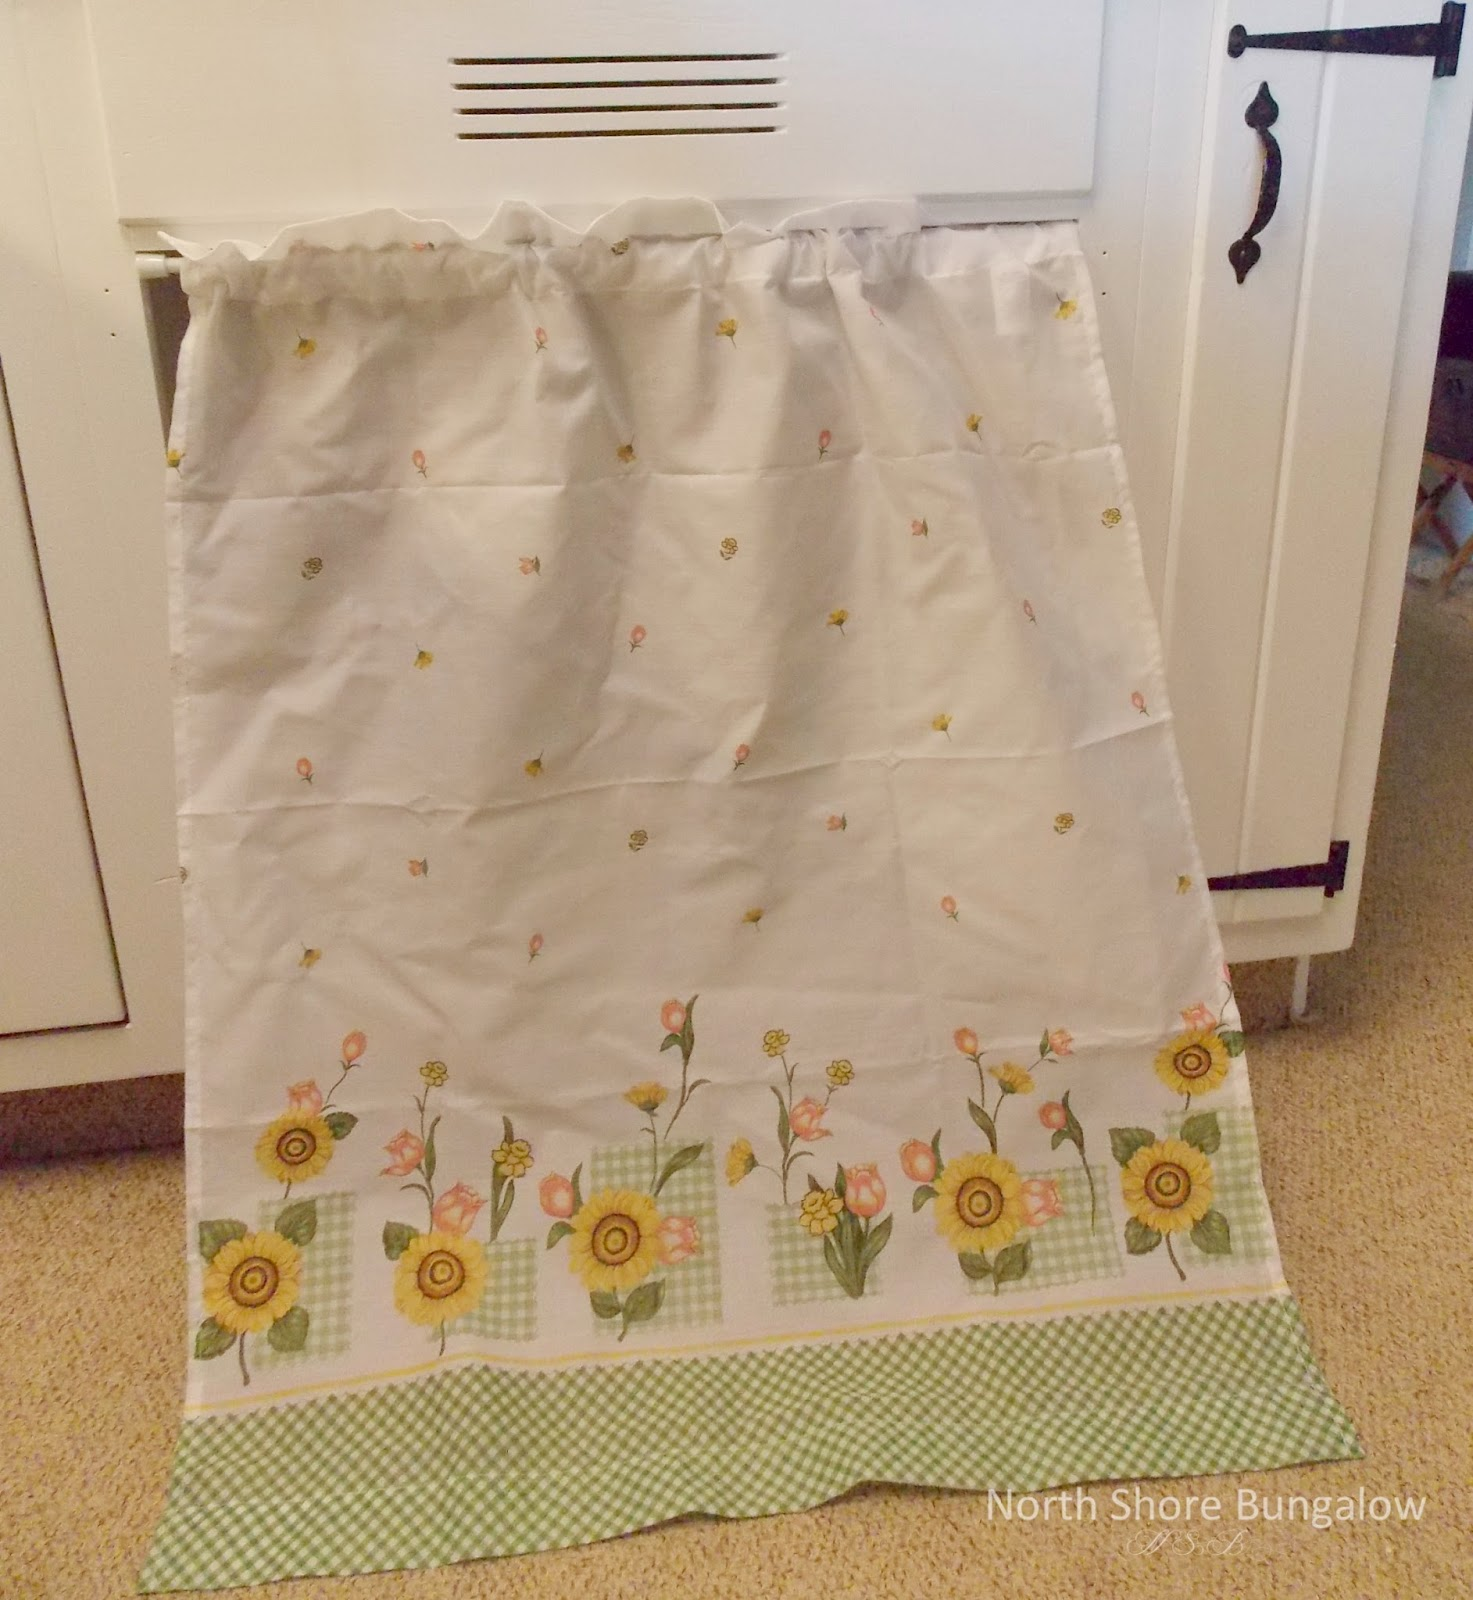 North Shore Bungalow: No Sew Under The Sink Curtains